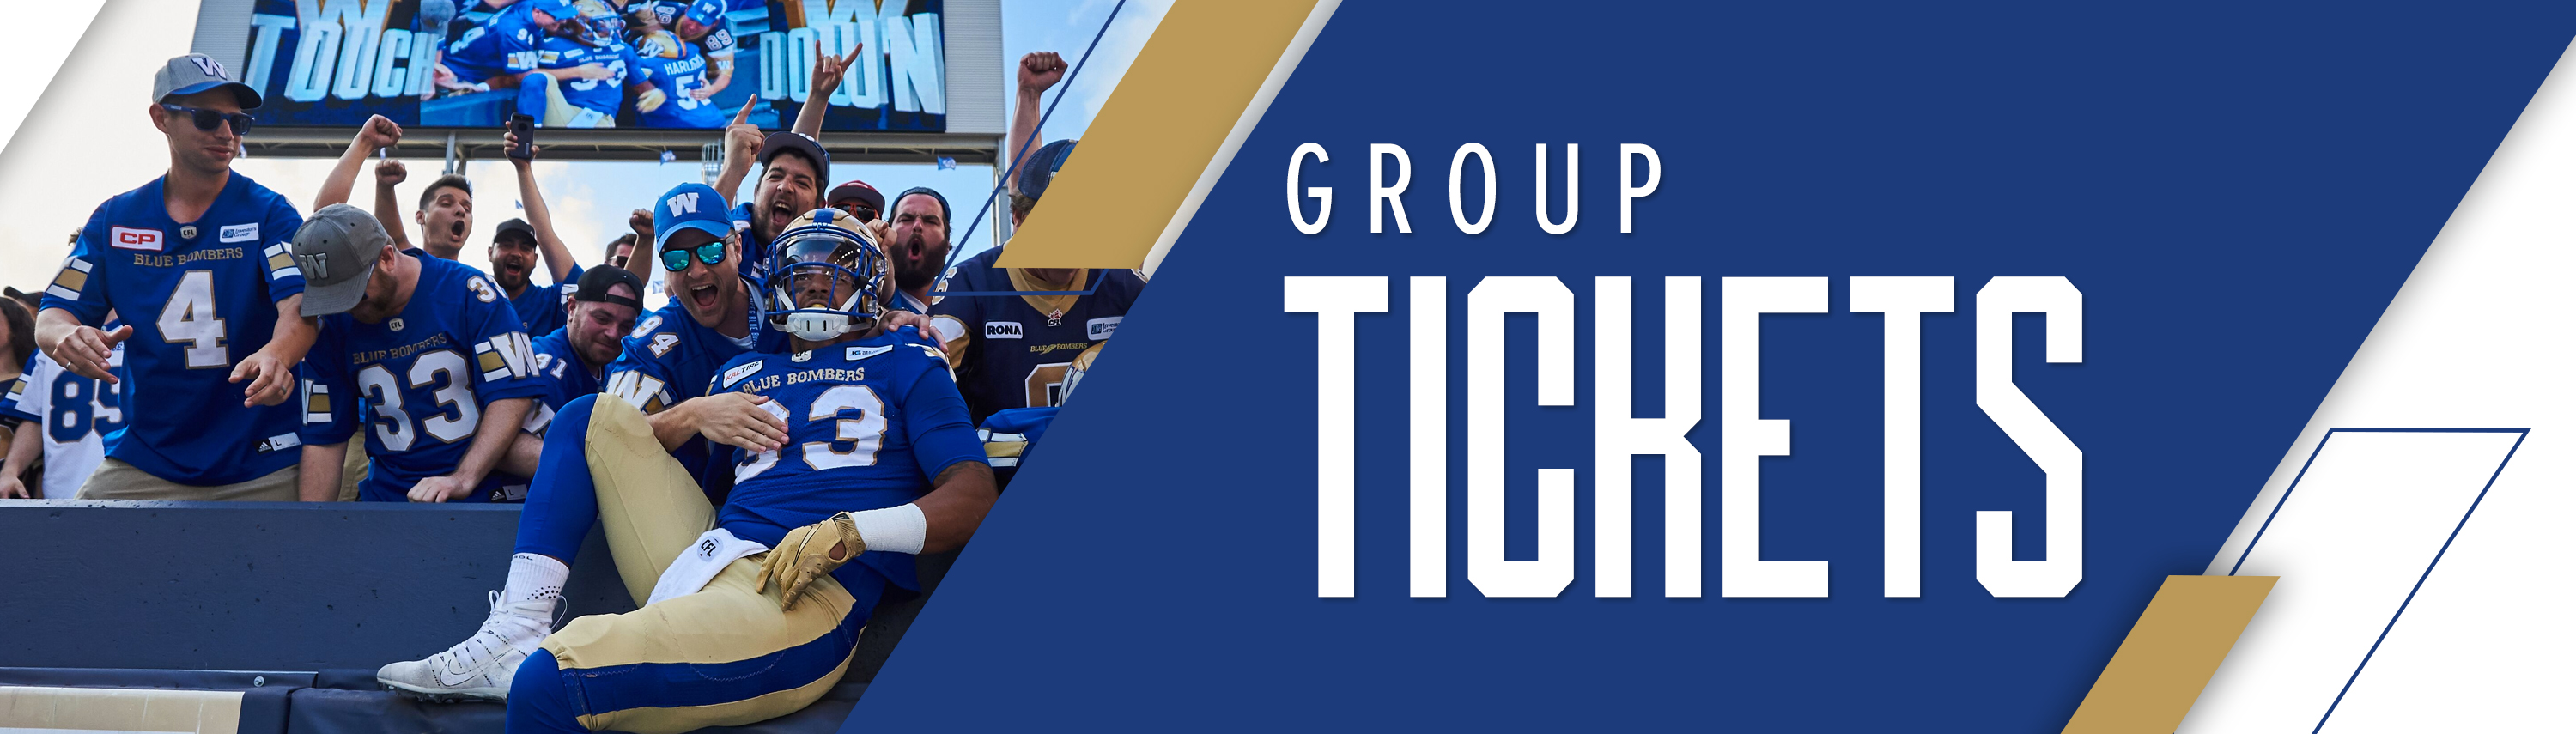 2019 Winnipeg Blue Bombers Group Tickets